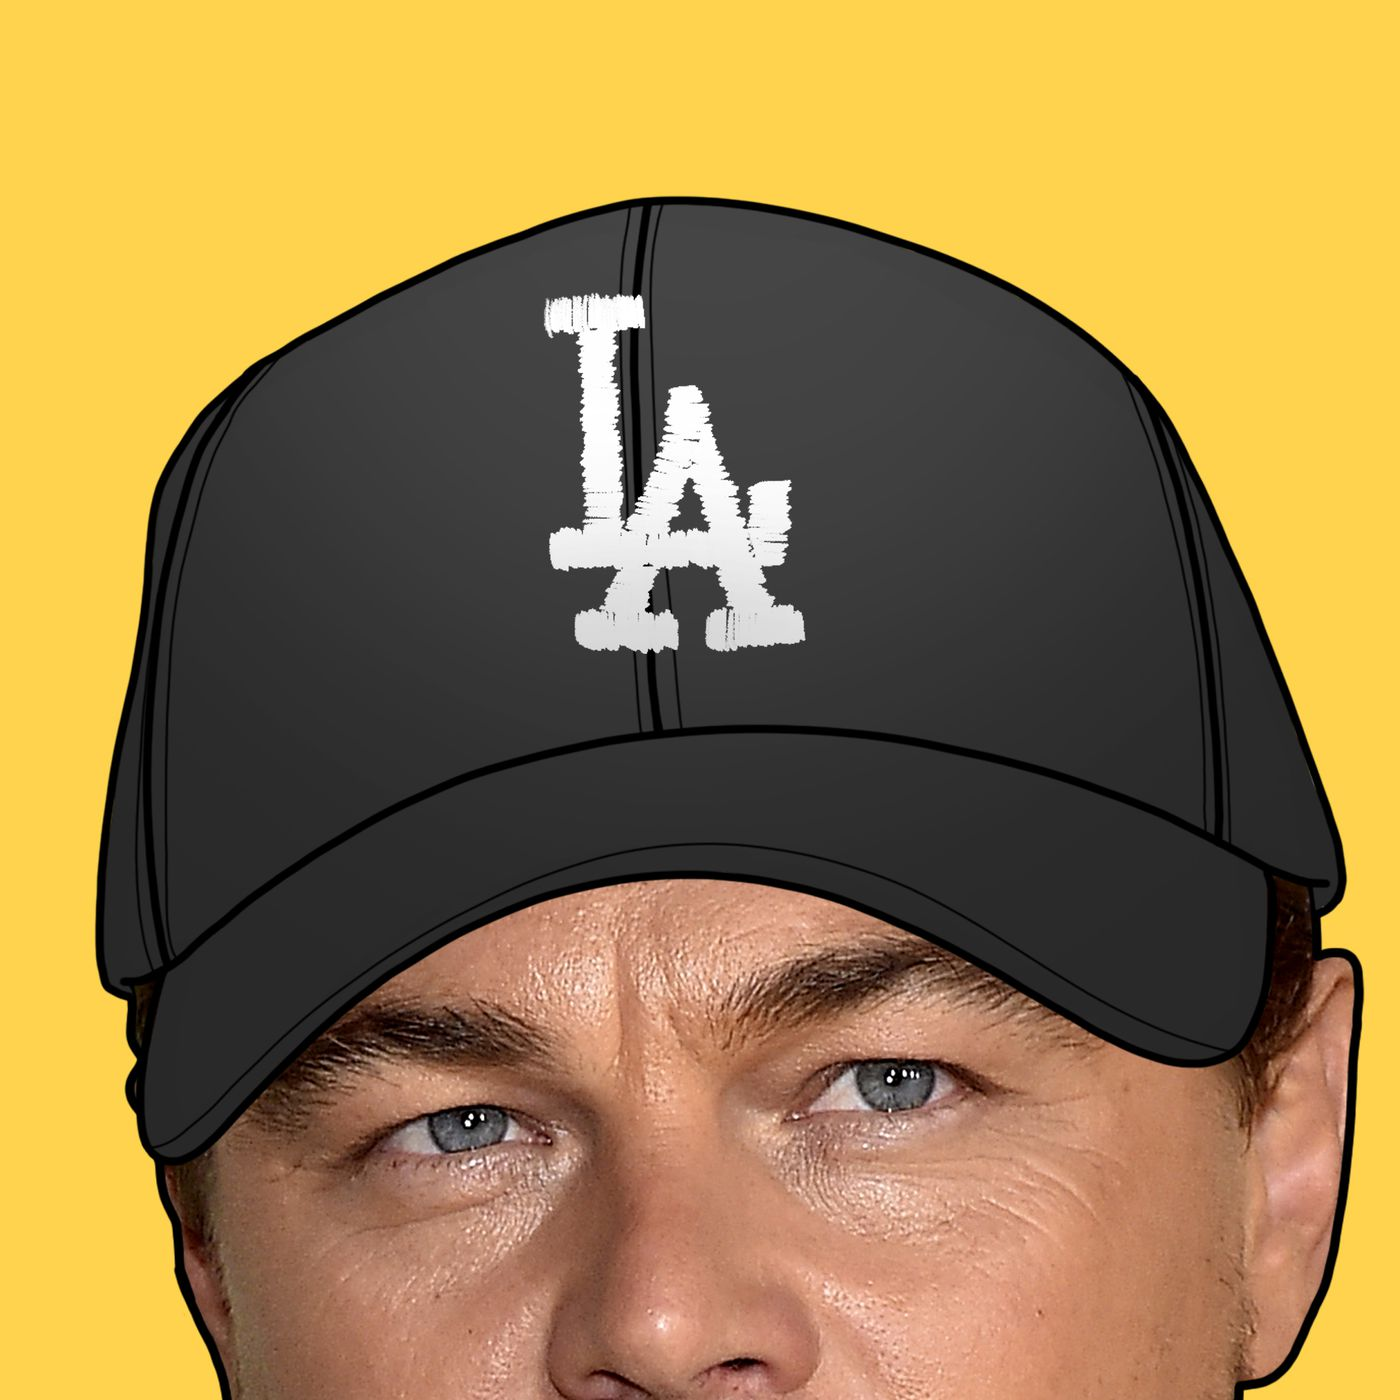 b5a4b96a8dda1 The Leonardo DiCaprio Baseball Cap Bracket - The Ringer